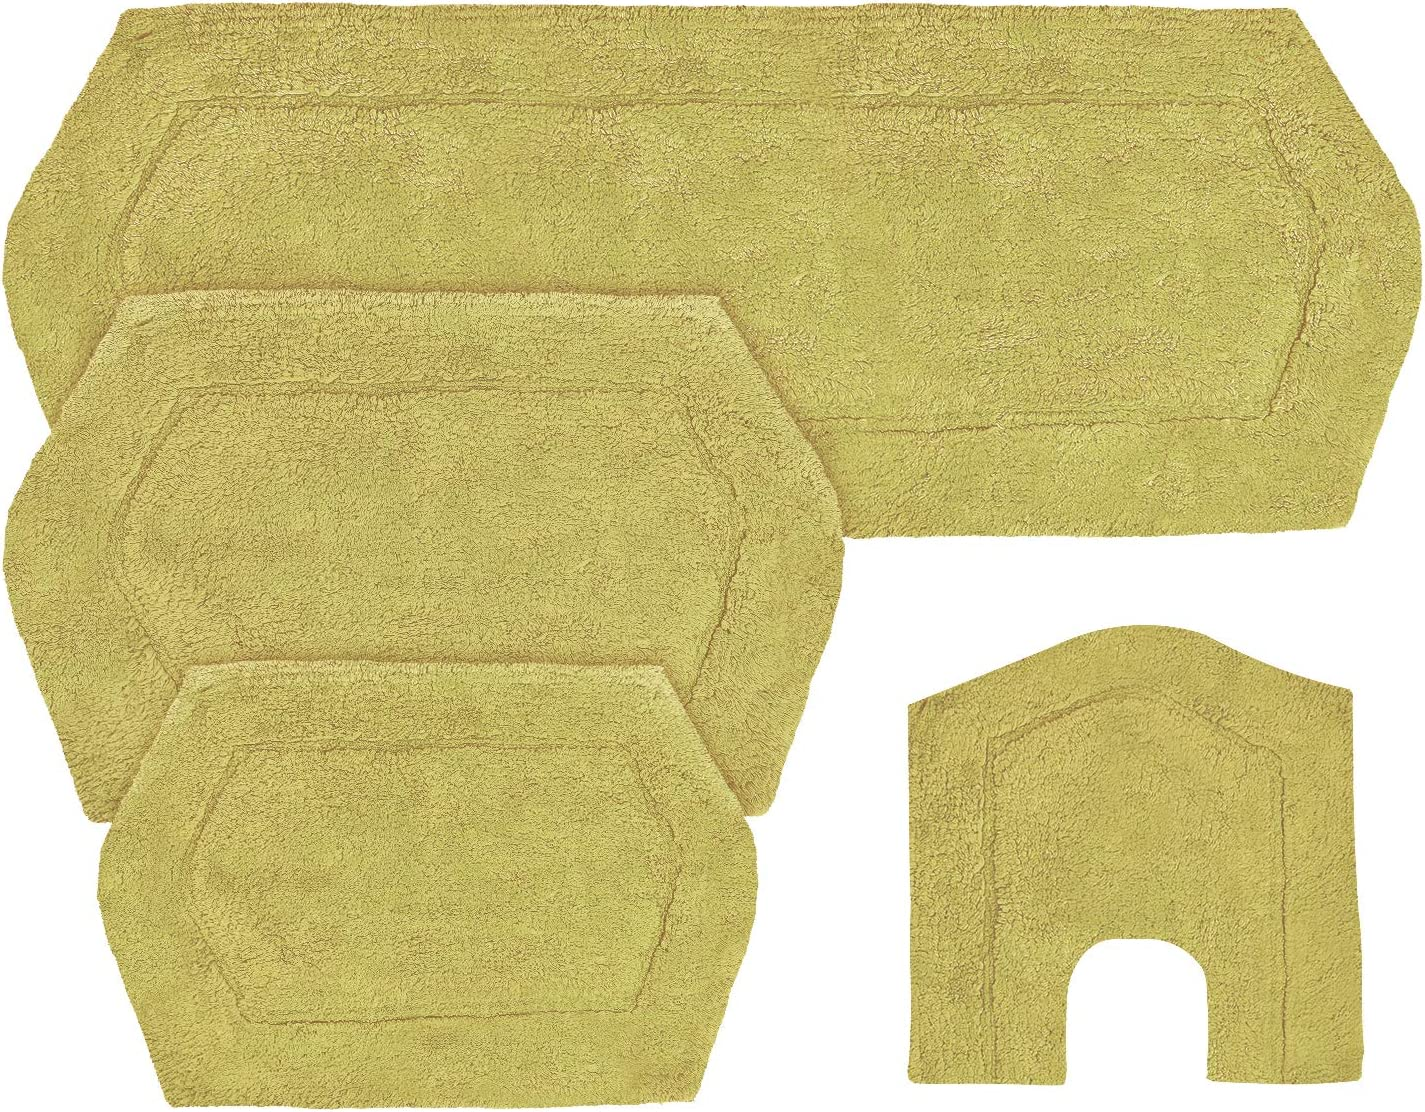 Amazon Com Home Weavers Waterford Collection Absorbent Cotton Soft Rug Machine Wash Dry 17 X24 21 X34 20 X20 22 X60 Sage Home Kitchen